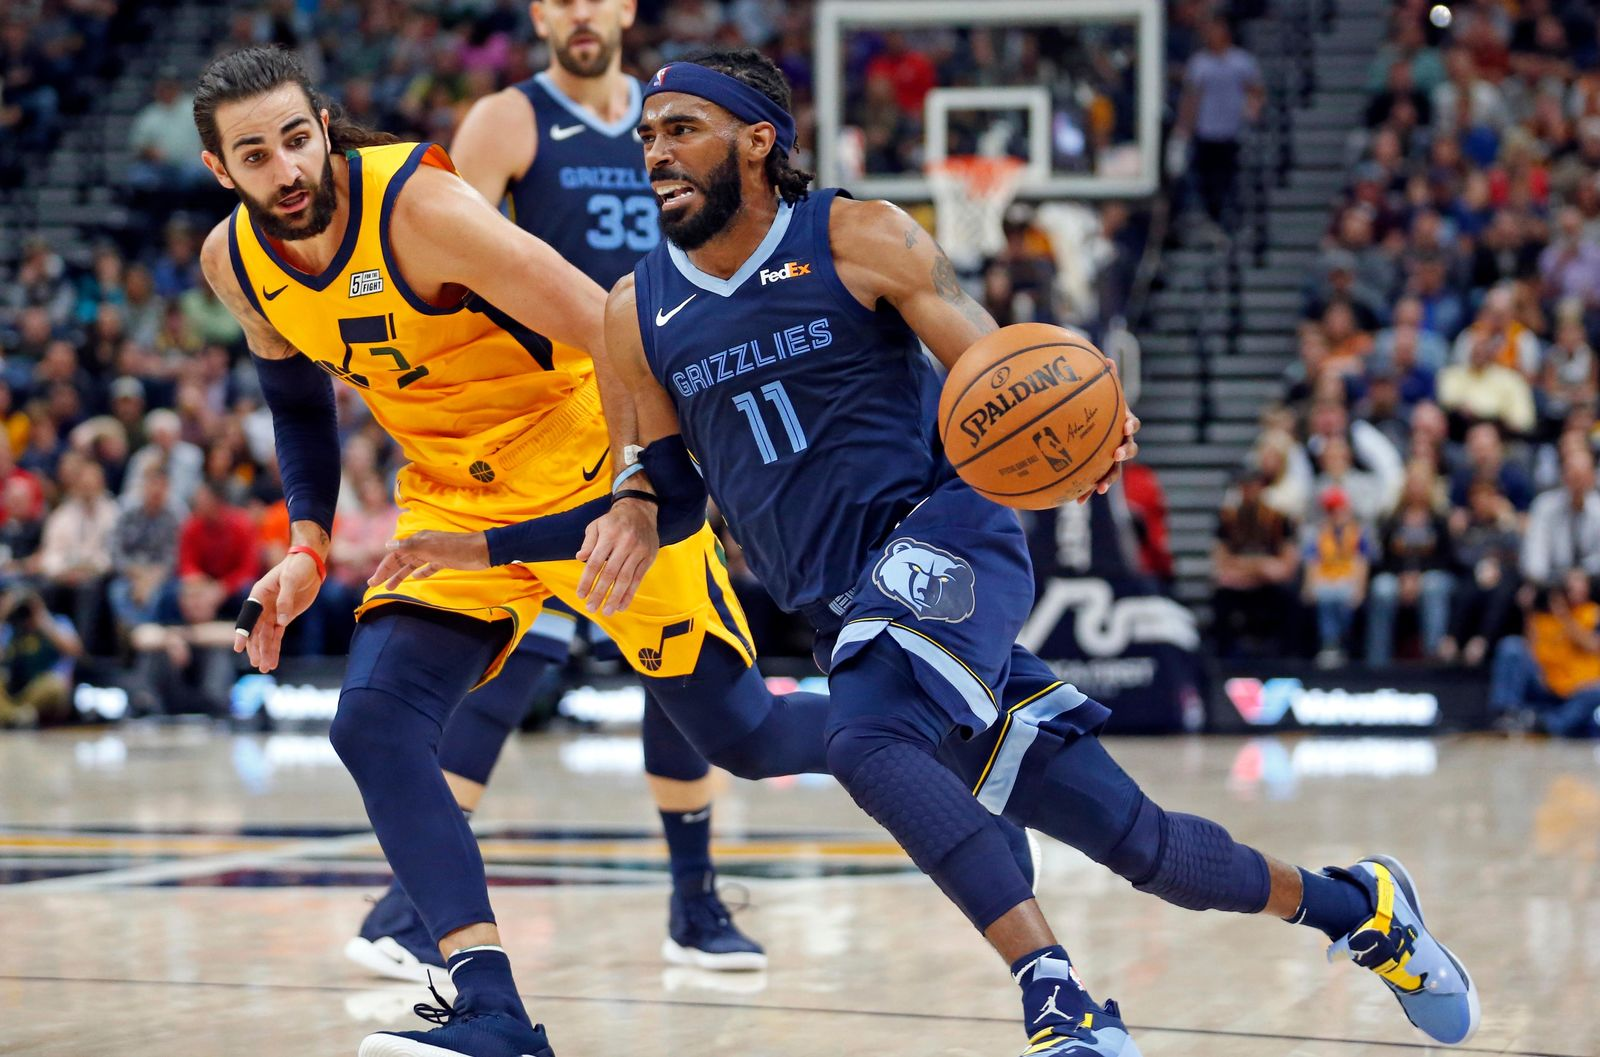 Memphis Grizzlies guard Mike Conley (11) drives to the basket as Utah Jazz guard Ricky Rubio, rear, defends in the first half of an NBA basketball game, Monday, Oct. 22, 2018, in Salt Lake City. (AP Photo/Rick Bowmer)